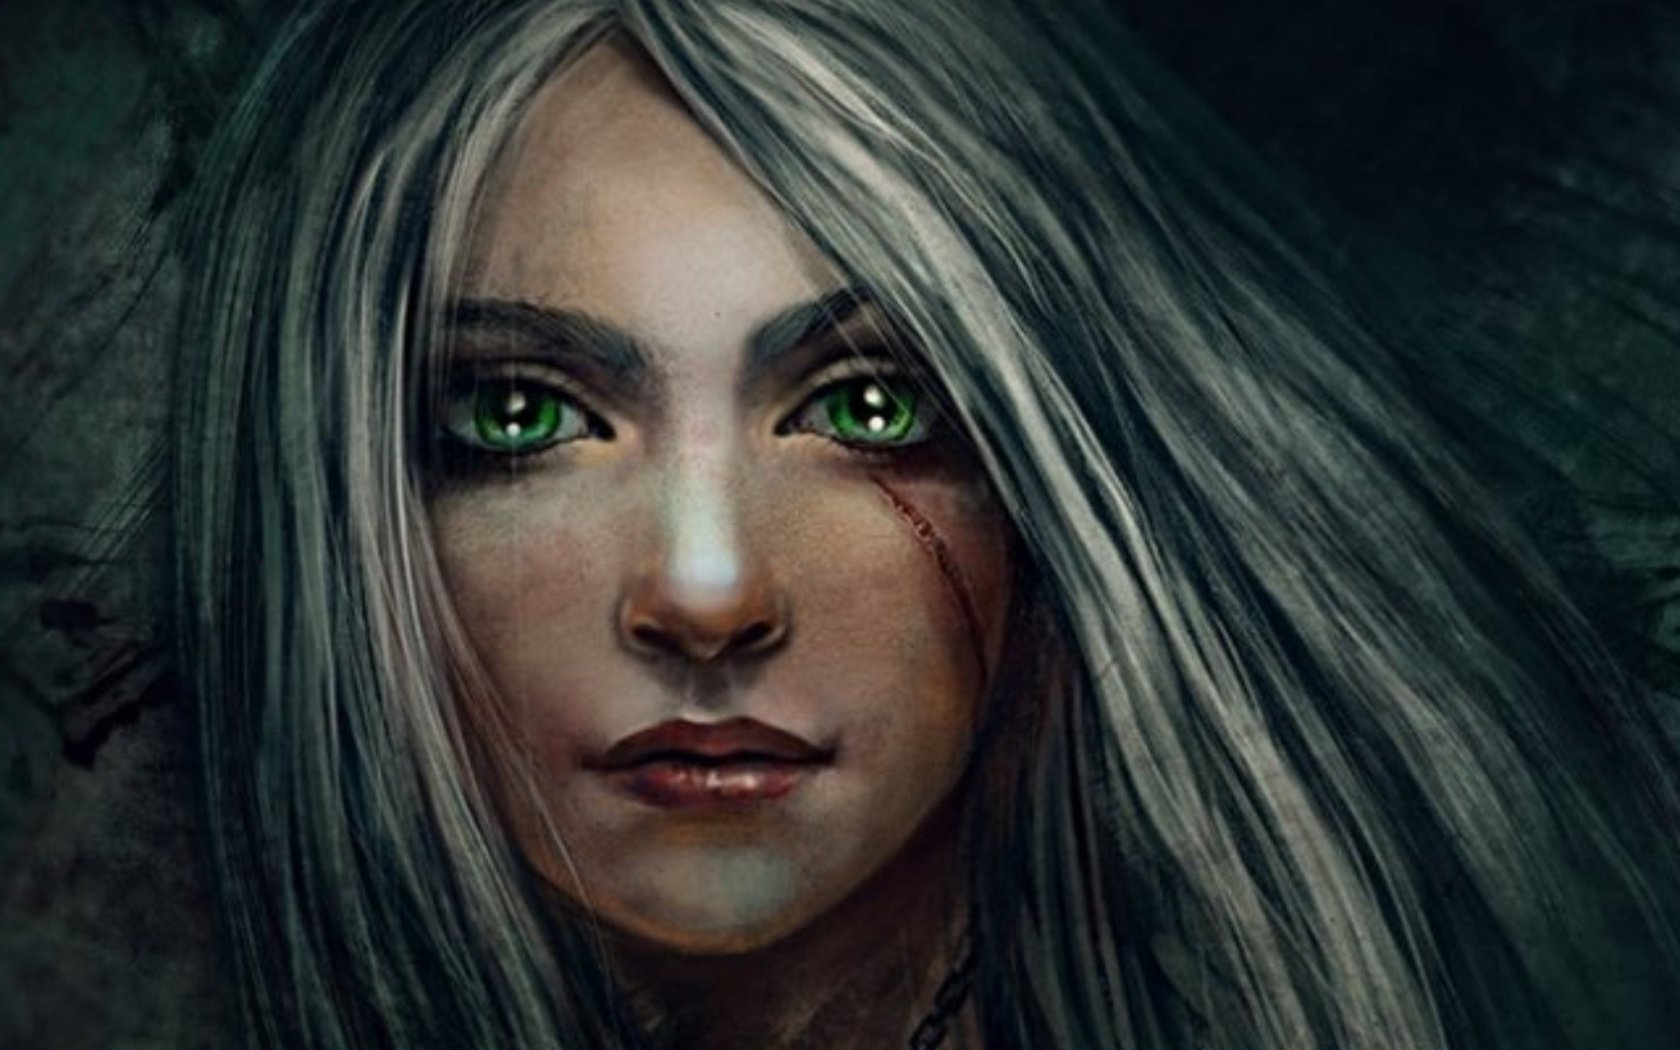 Fantasy - Women  Fantasy Woman Girl Green Eyes Scar Wallpaper